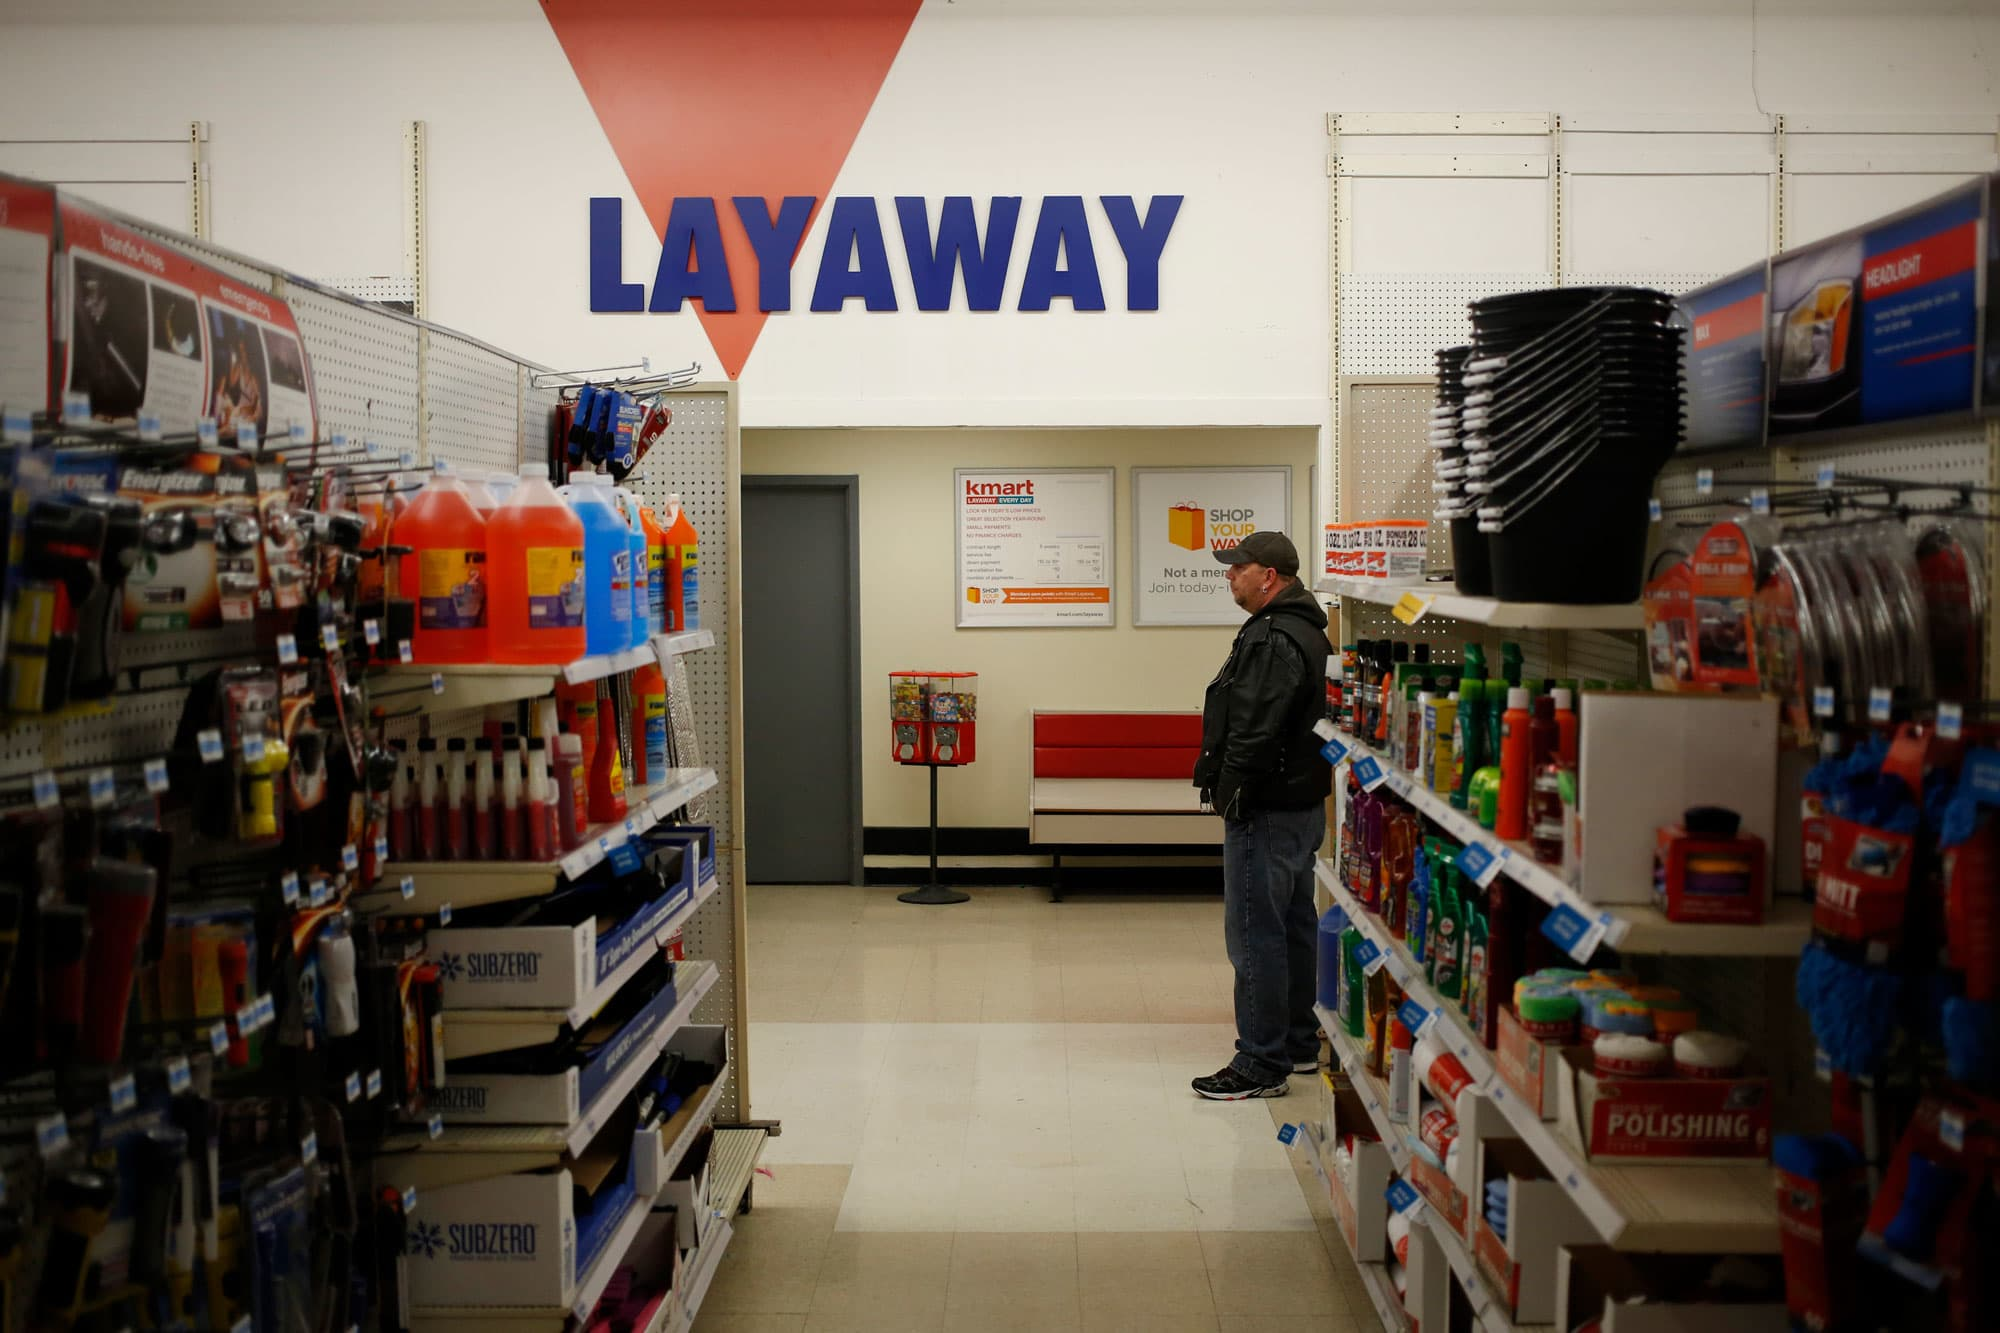 Nearly $50,000 in layaway paid off at a Pennsylvania Wal-Mart